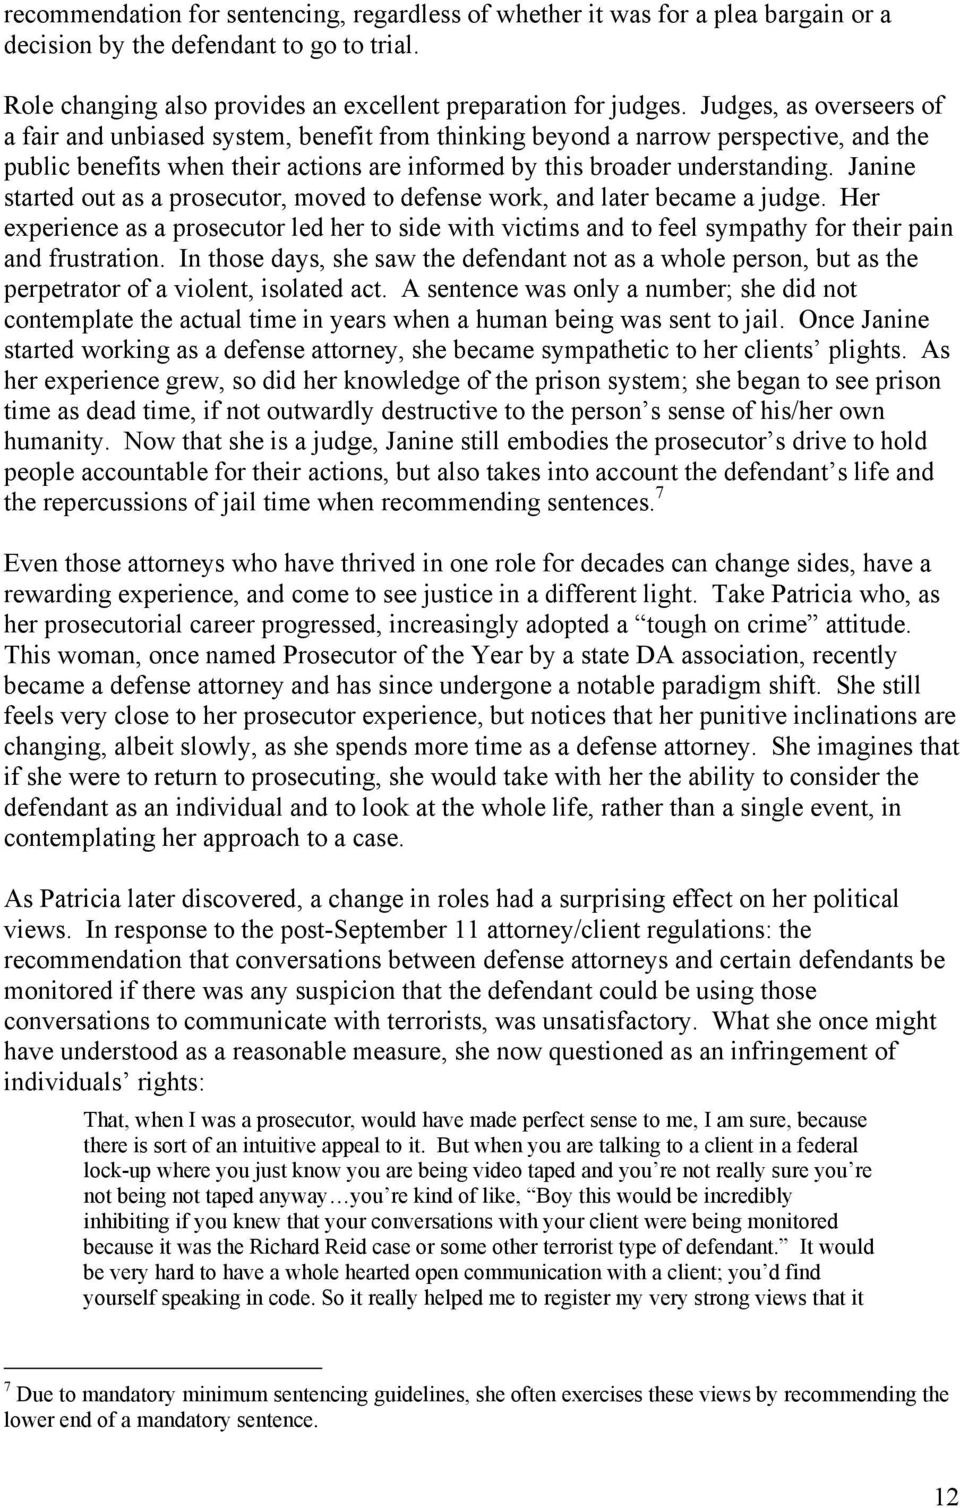 Janine started out as a prosecutor, moved to defense work, and later became a judge. Her experience as a prosecutor led her to side with victims and to feel sympathy for their pain and frustration.